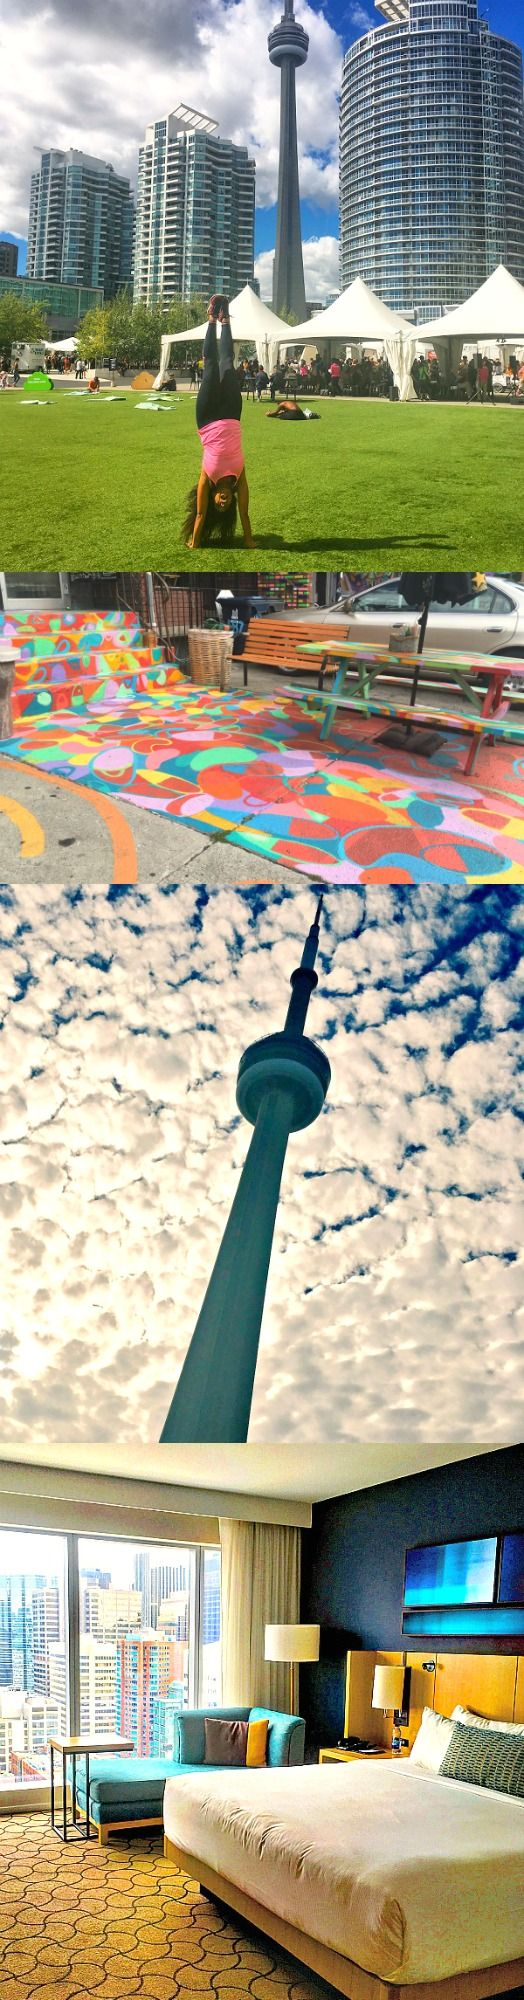 A day in Toronto - 5 awesome things I did in Downtown Toronto, Ontario, Canada…